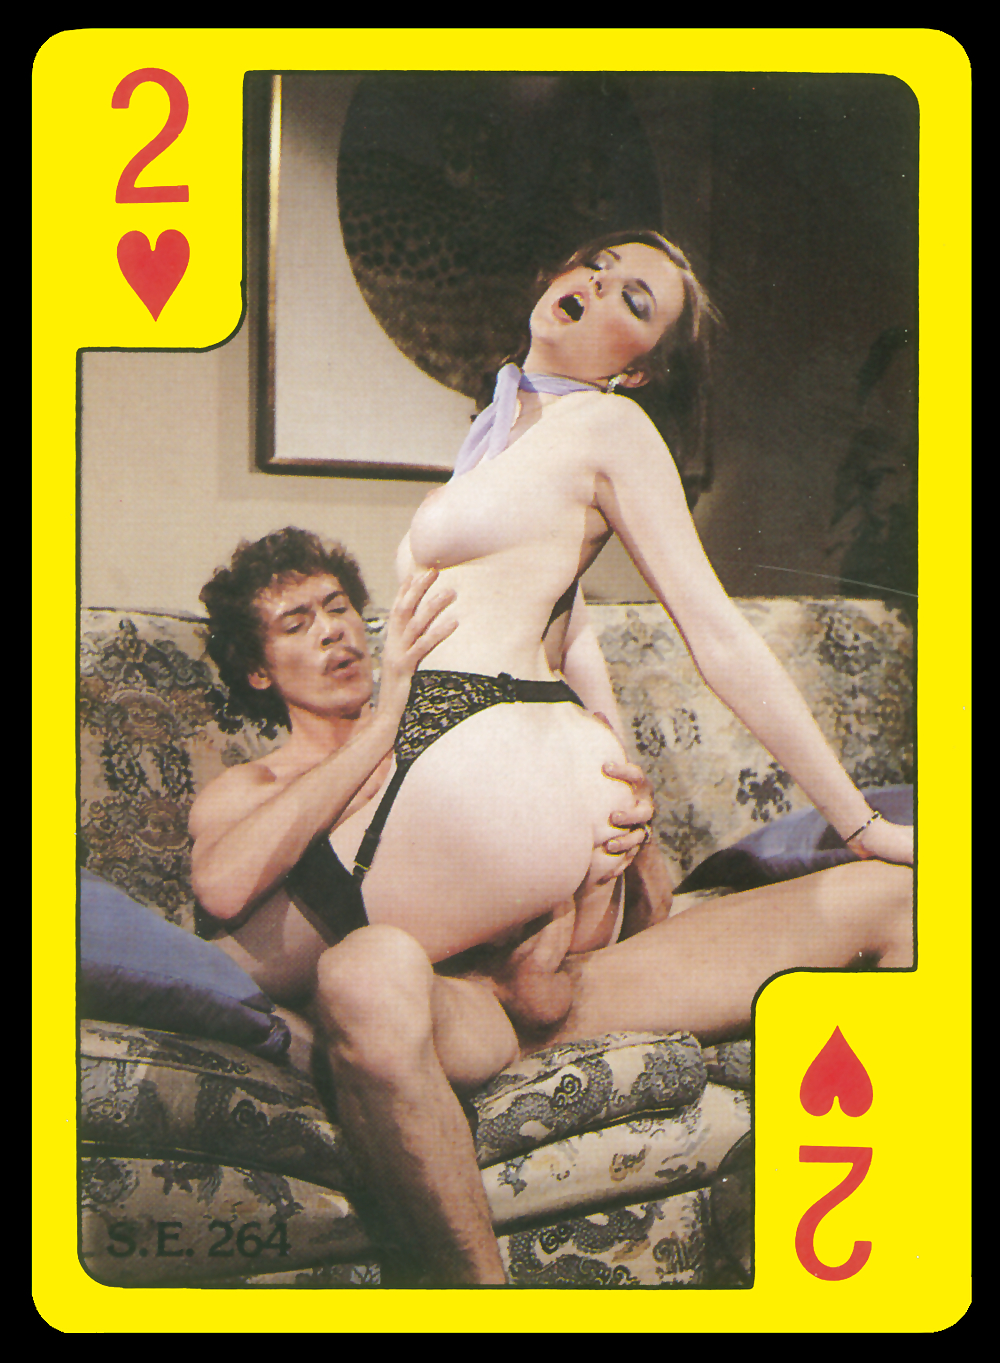 80S Style Porn retro pronstar deck of cards - '80s porn | motherless ™